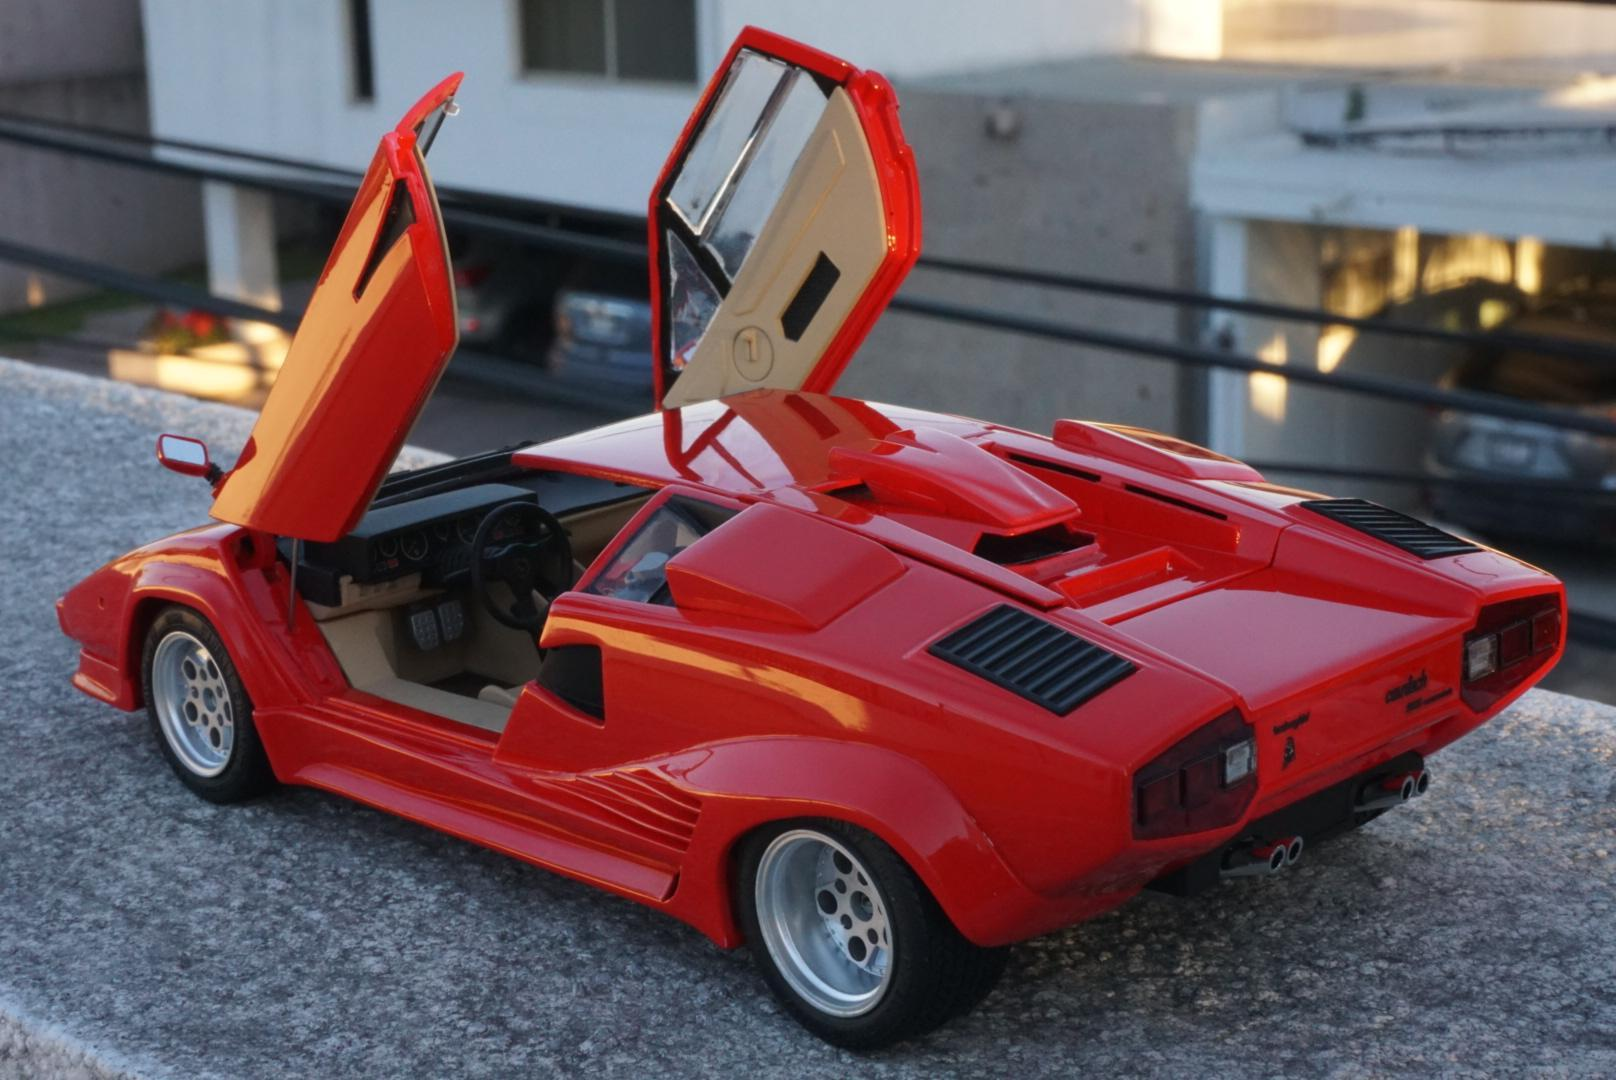 lamborghini countach 5000 quattrovalvole under glass model cars magazine forum. Black Bedroom Furniture Sets. Home Design Ideas